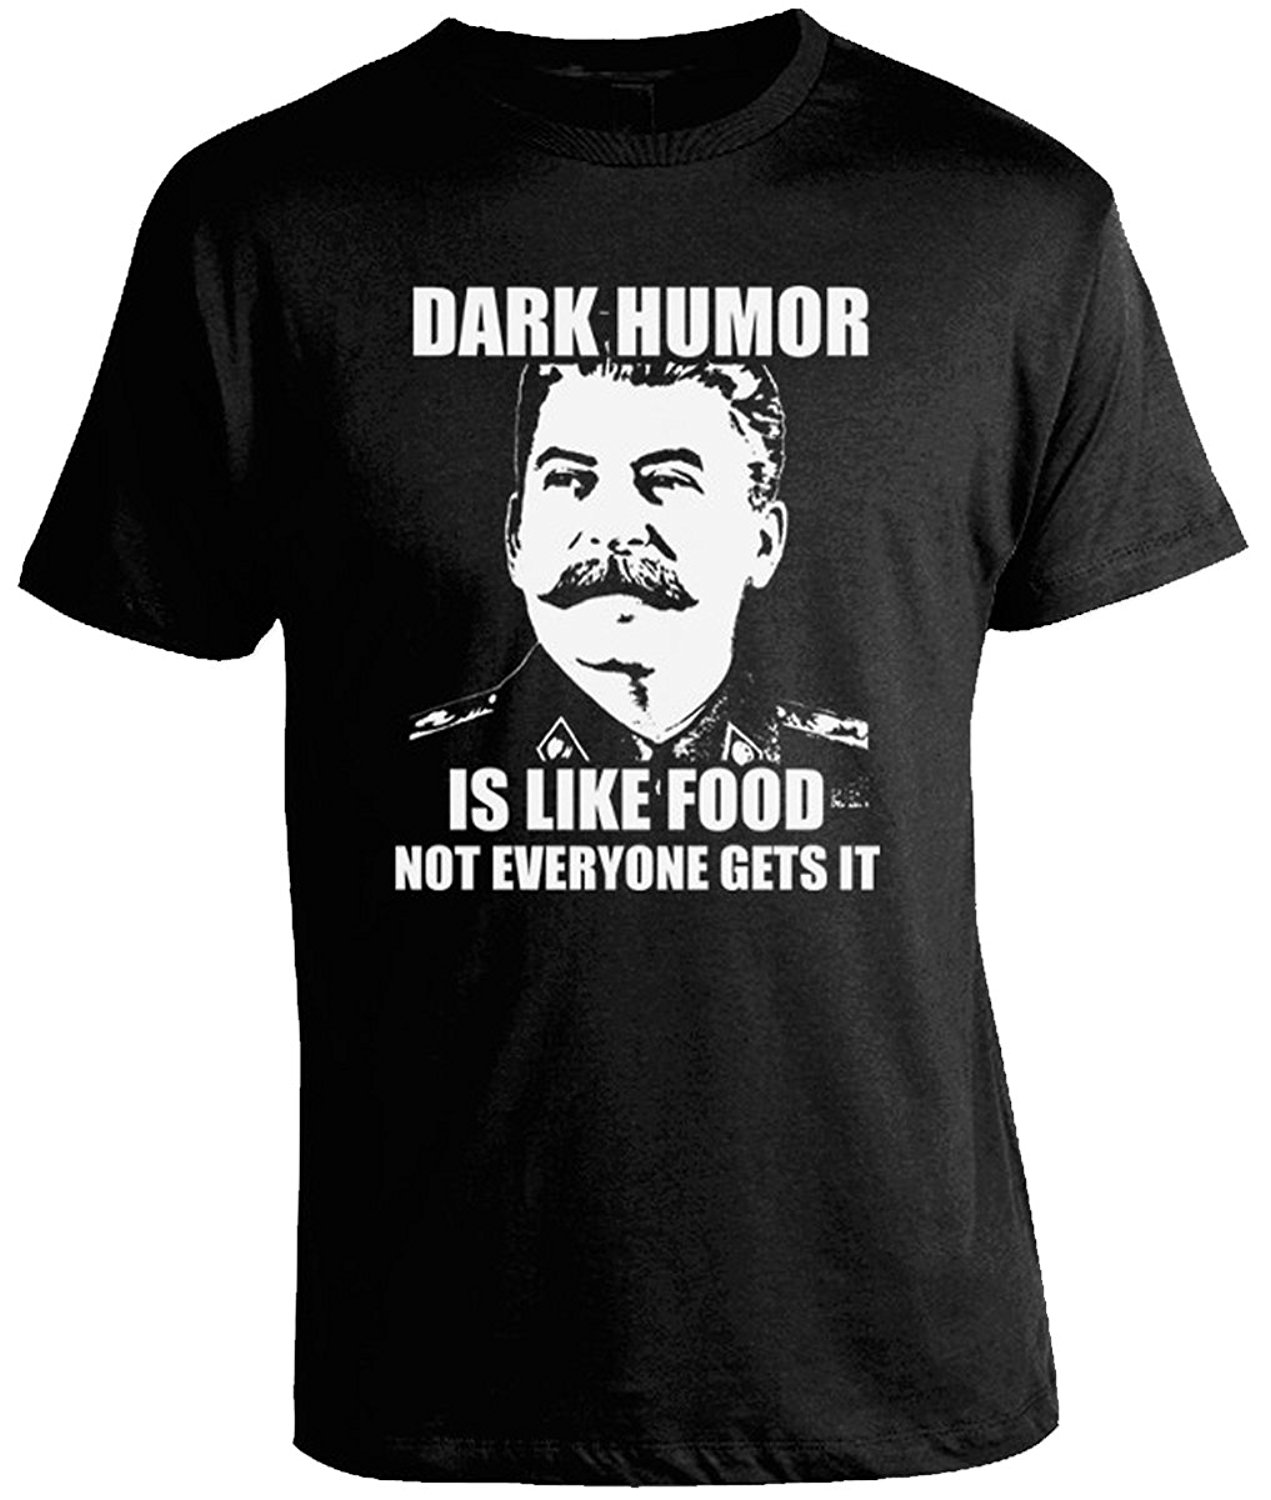 Gildan Dark Humor Is Like Food Stalin Joke T Shirt Funny Cool Fashion Printed MenS T Shirt Short Sleeve S 3Xl